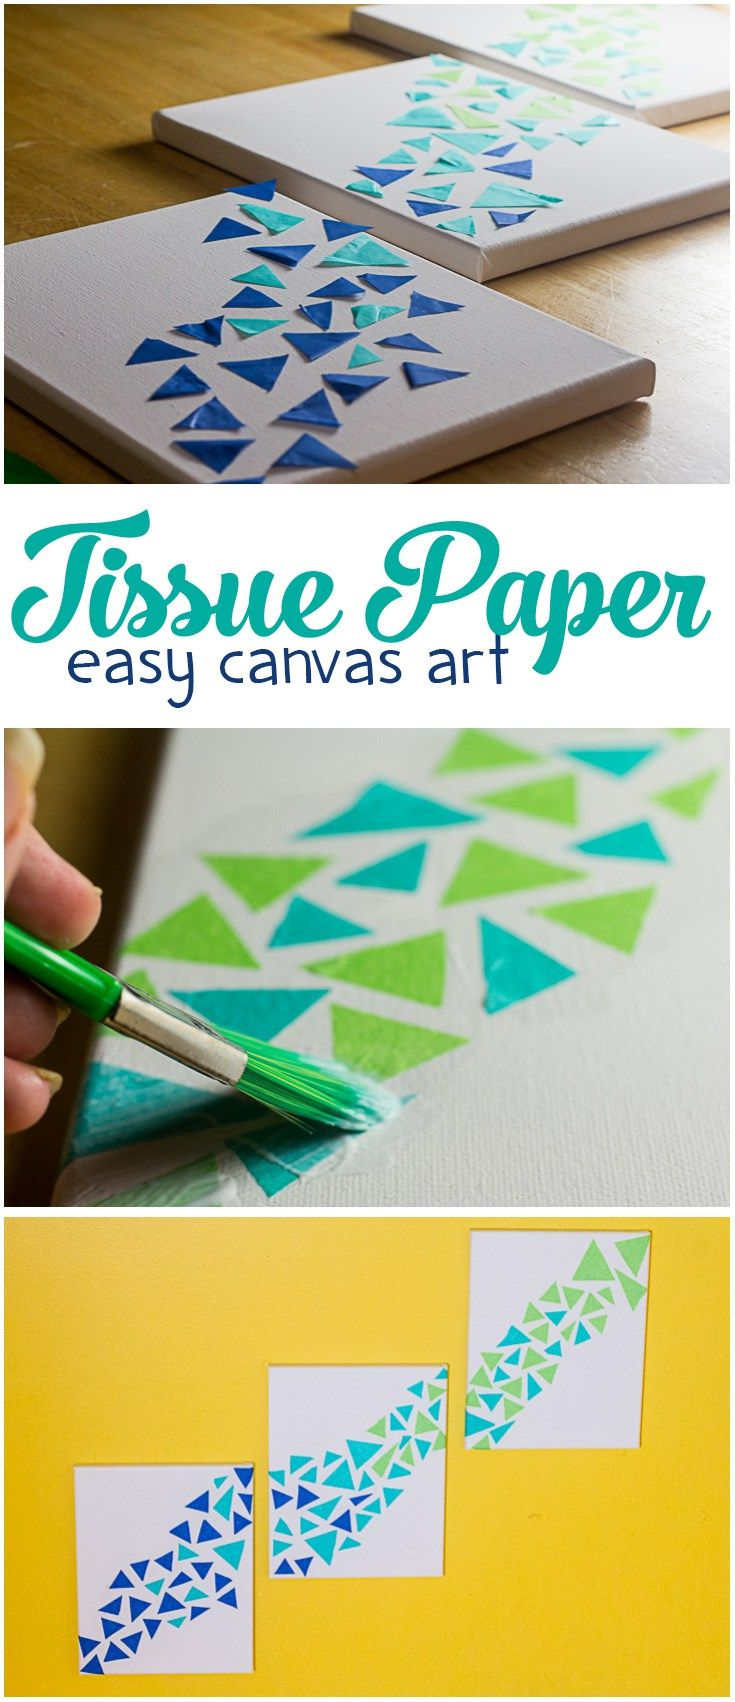 DIY Craft: This tissue paper canvas art is so easy! Looking for the perfect mermaid scale artwork or easy craft project for you or your teen? This one takes less than an hour to make, is beautiful, and even makes a perfect gift! | DIY canvas art | tissue paper craft | easy craft for adults | easy teen craft |